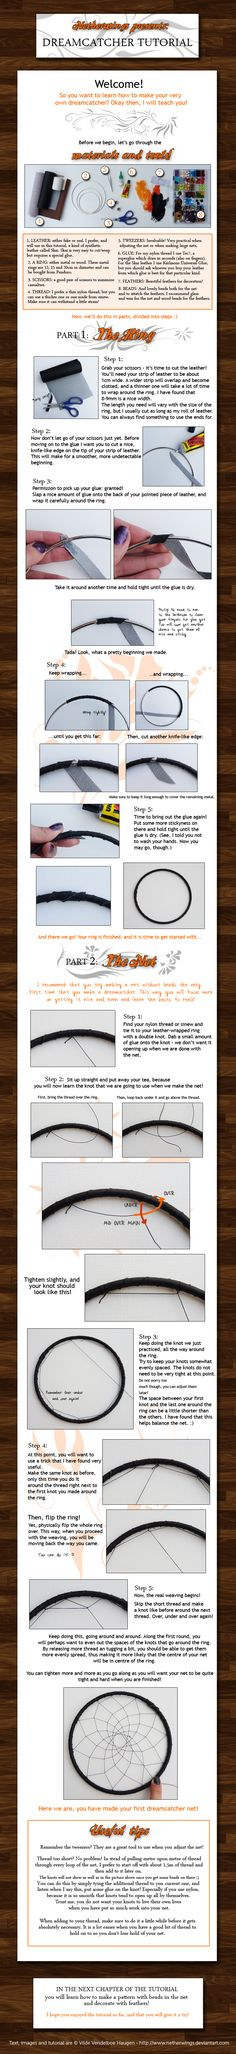 Dreamcatcher tutorial: Ch. 1 by netherwings on deviantART